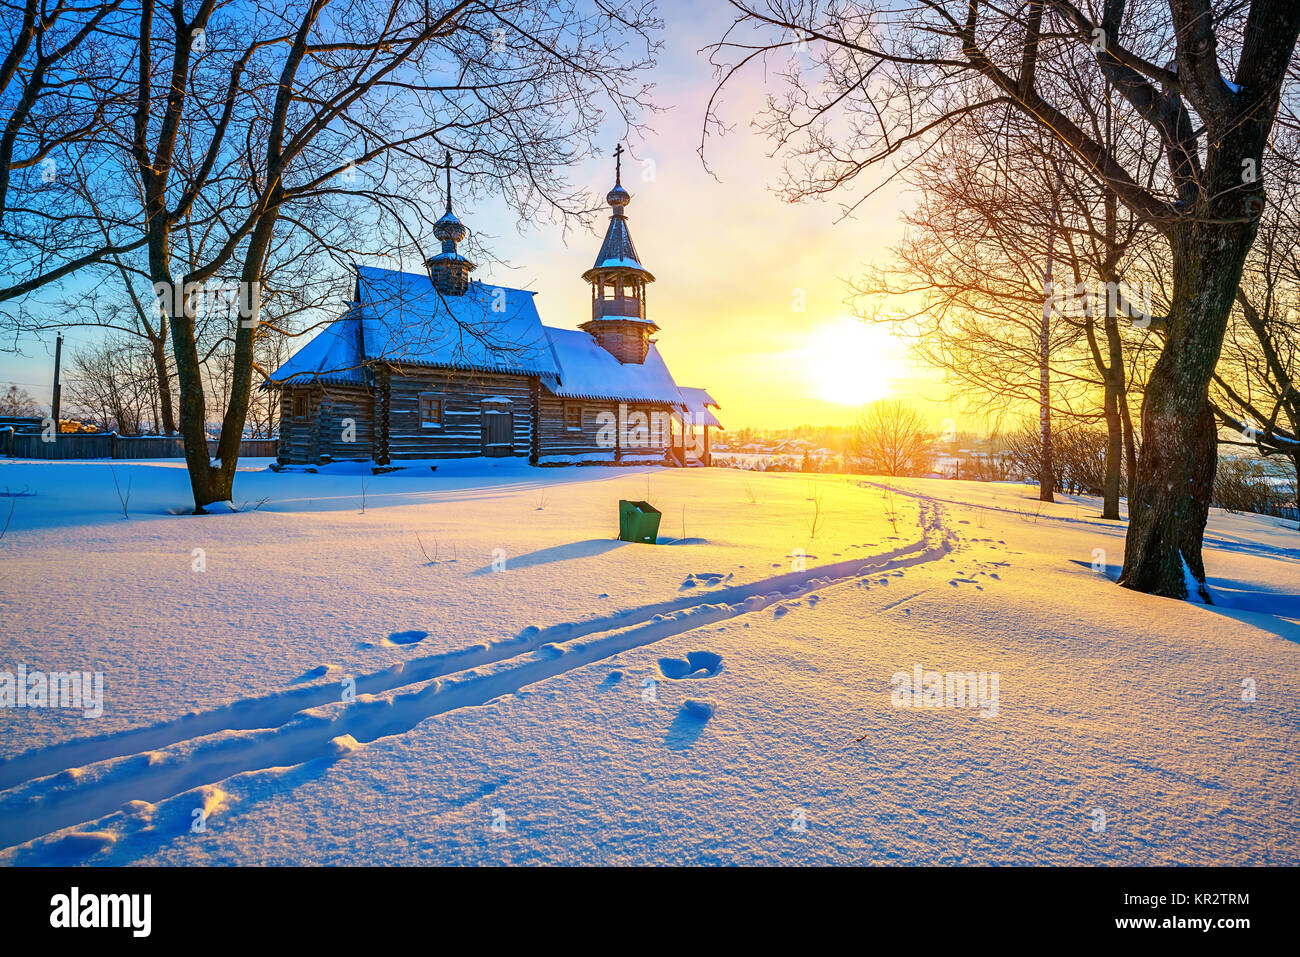 Russian church in winter forest - Stock Image